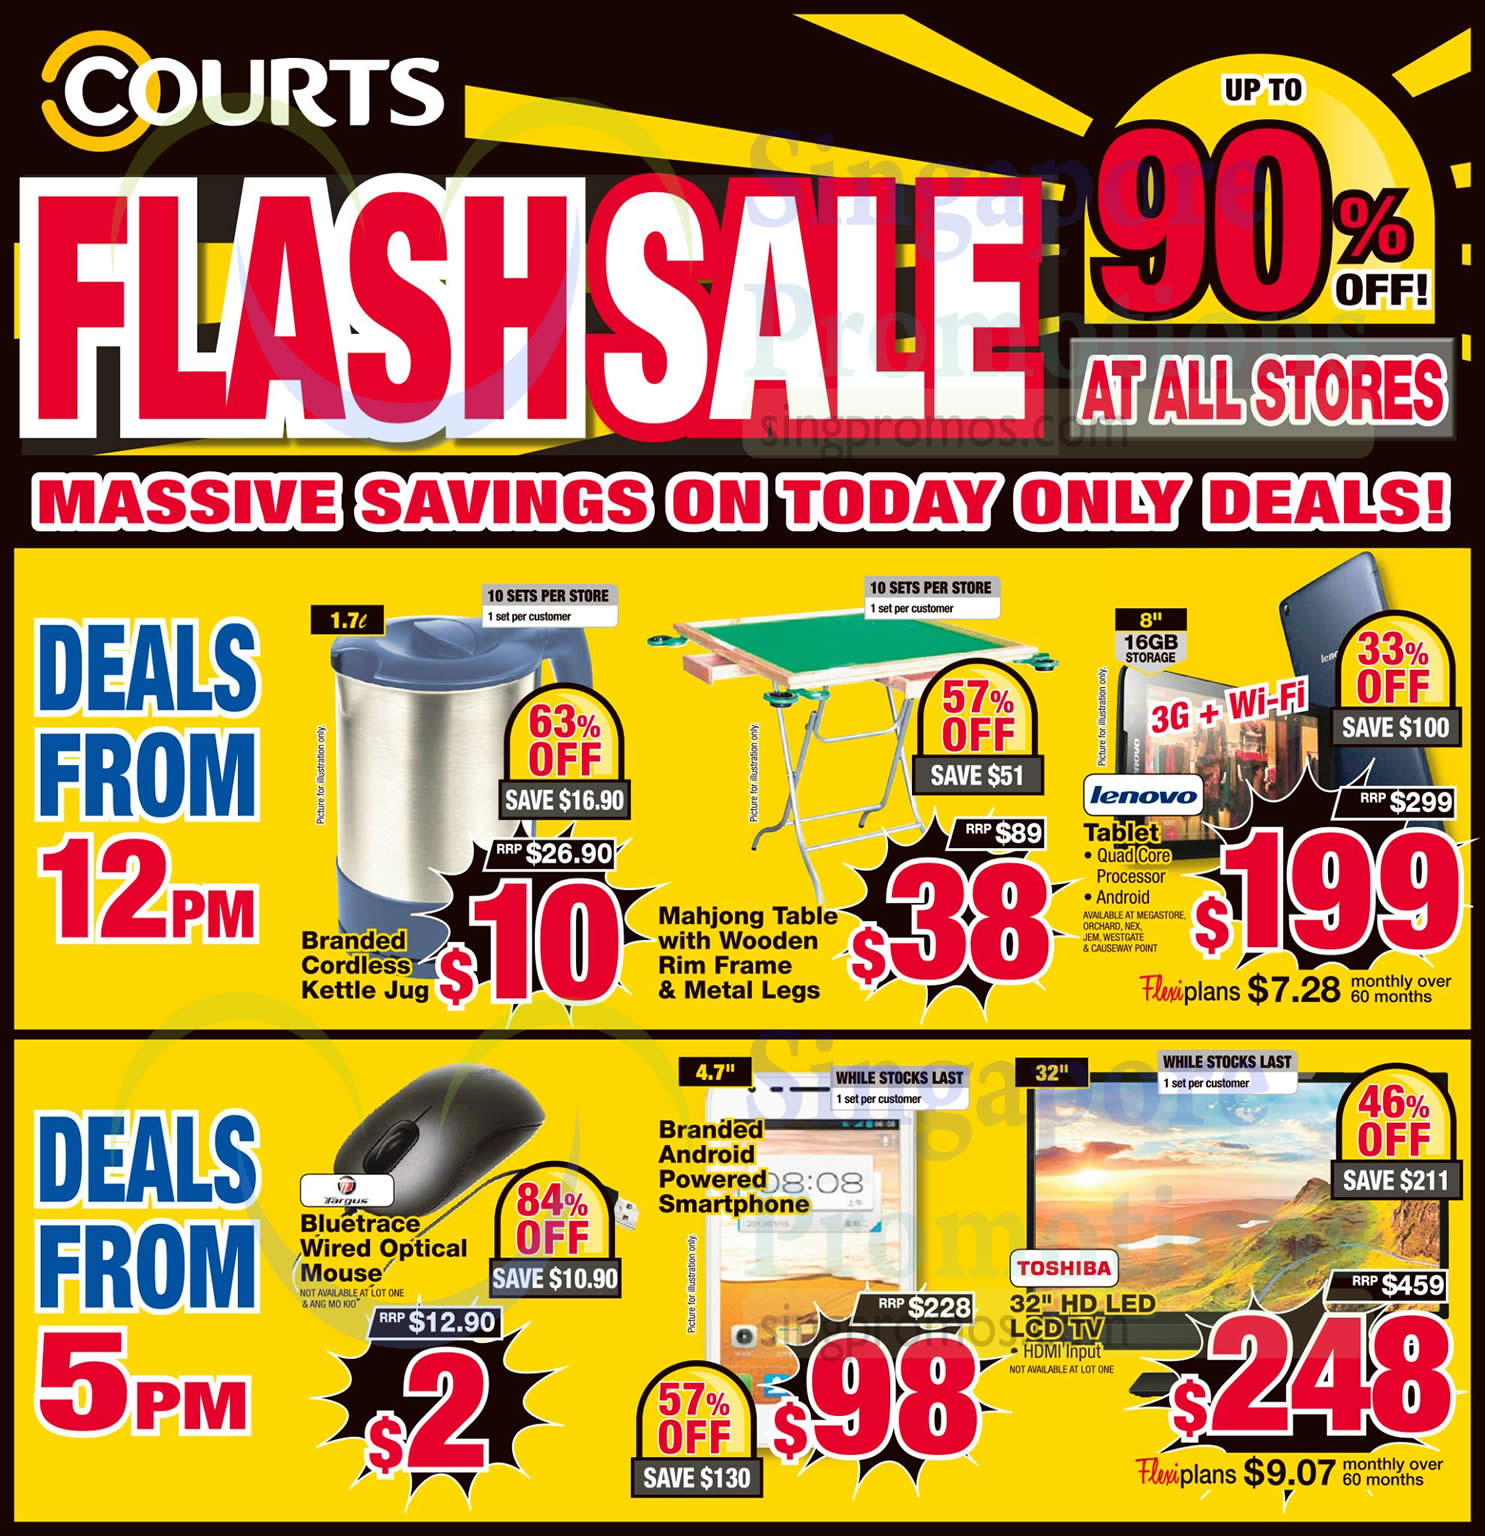 Courts Up To 75% Off 1-Day Flash Sale Offers 6 Feb 2015